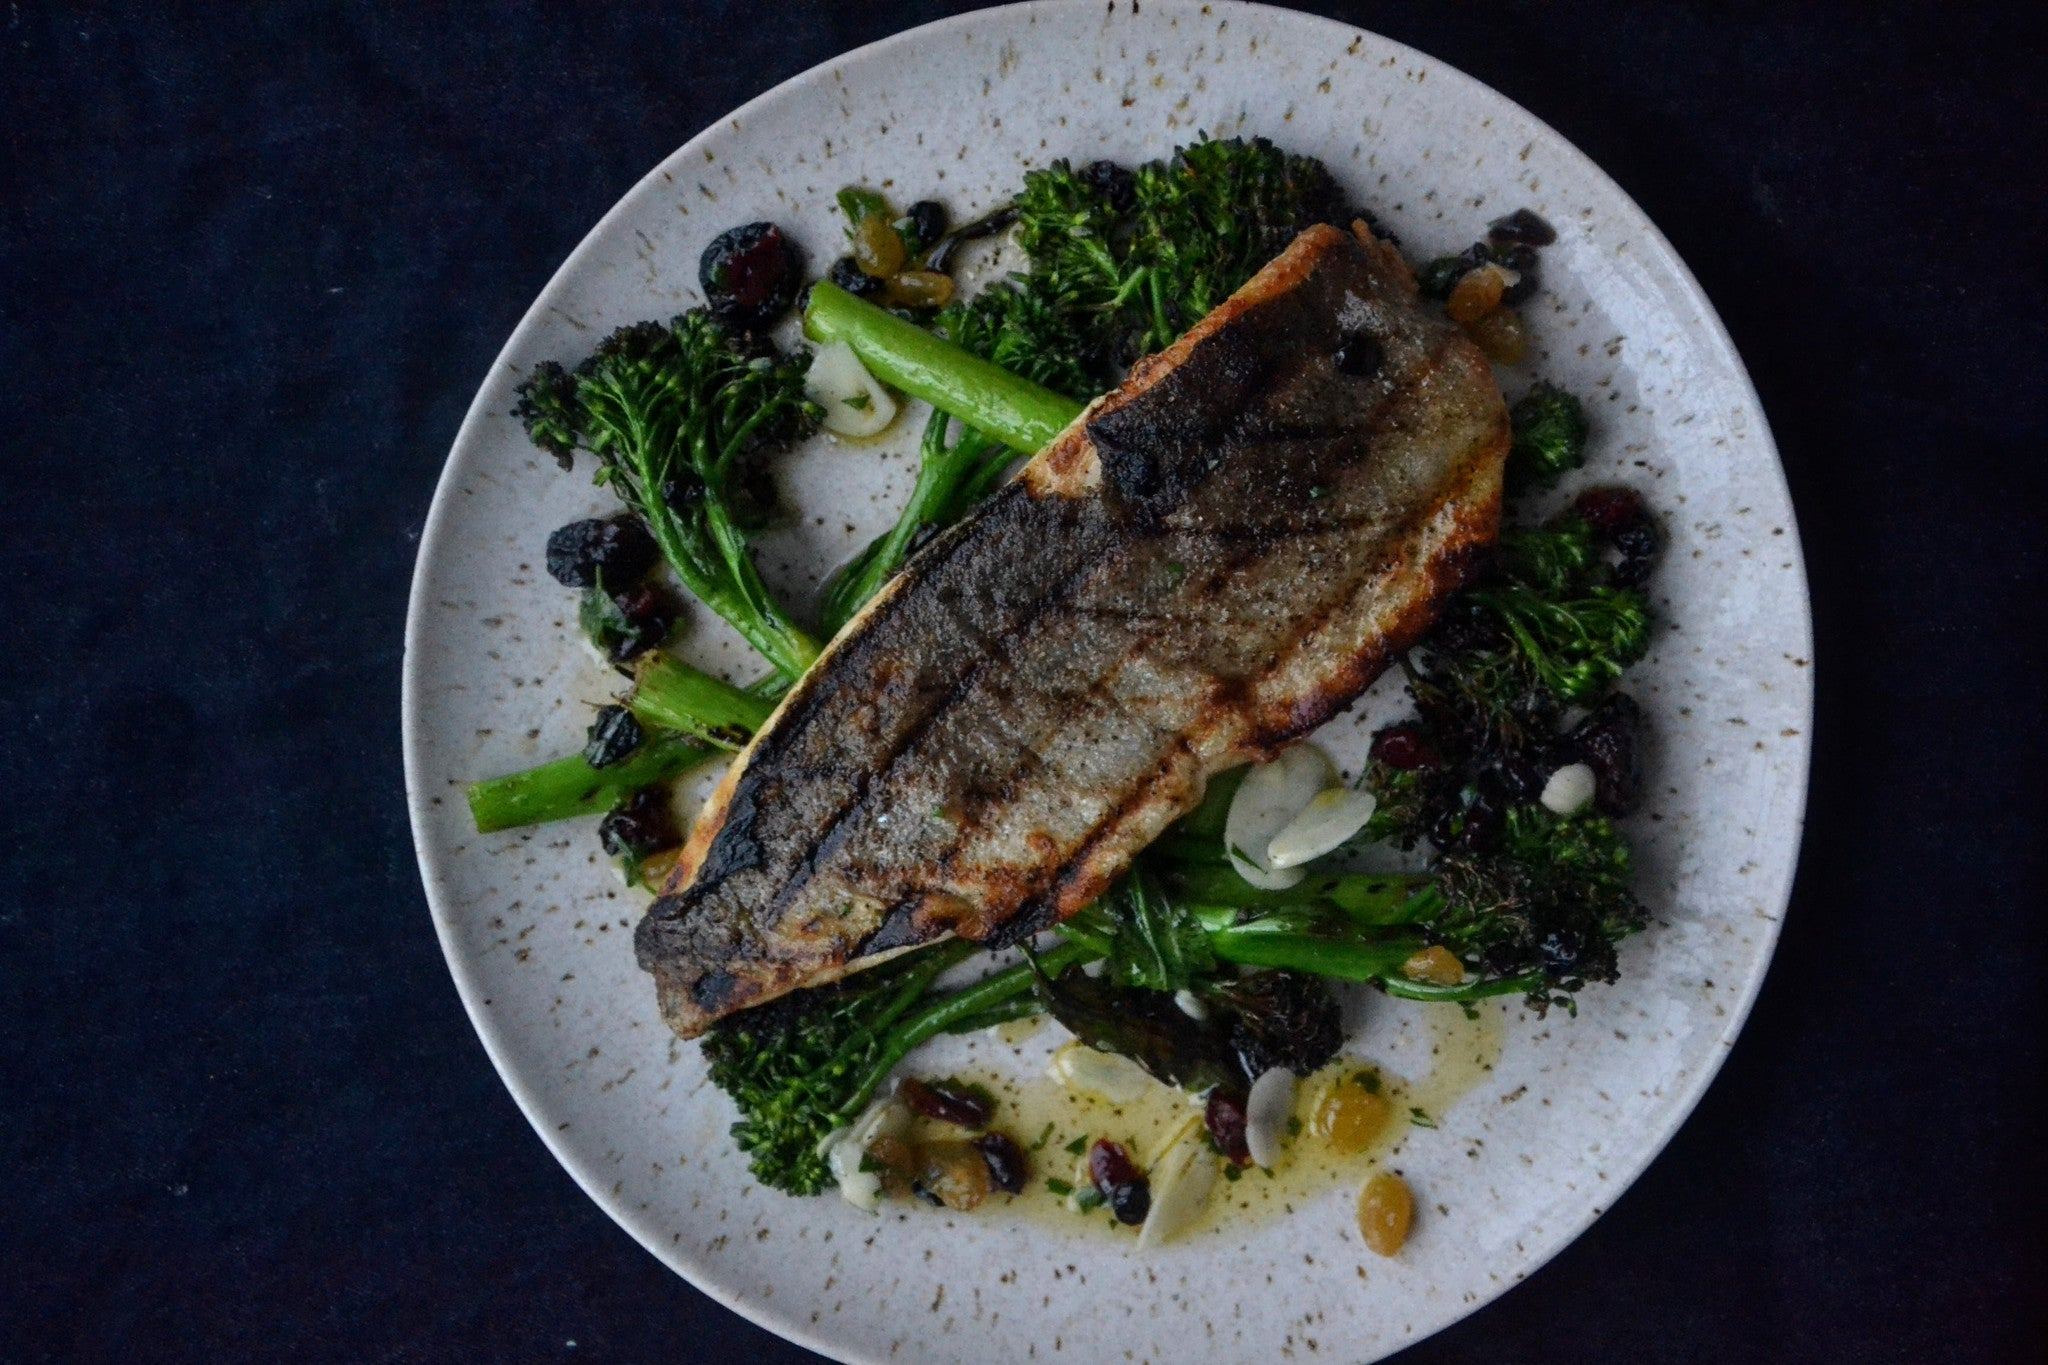 GRILLED TROUT WITH BROCCOLI RABE